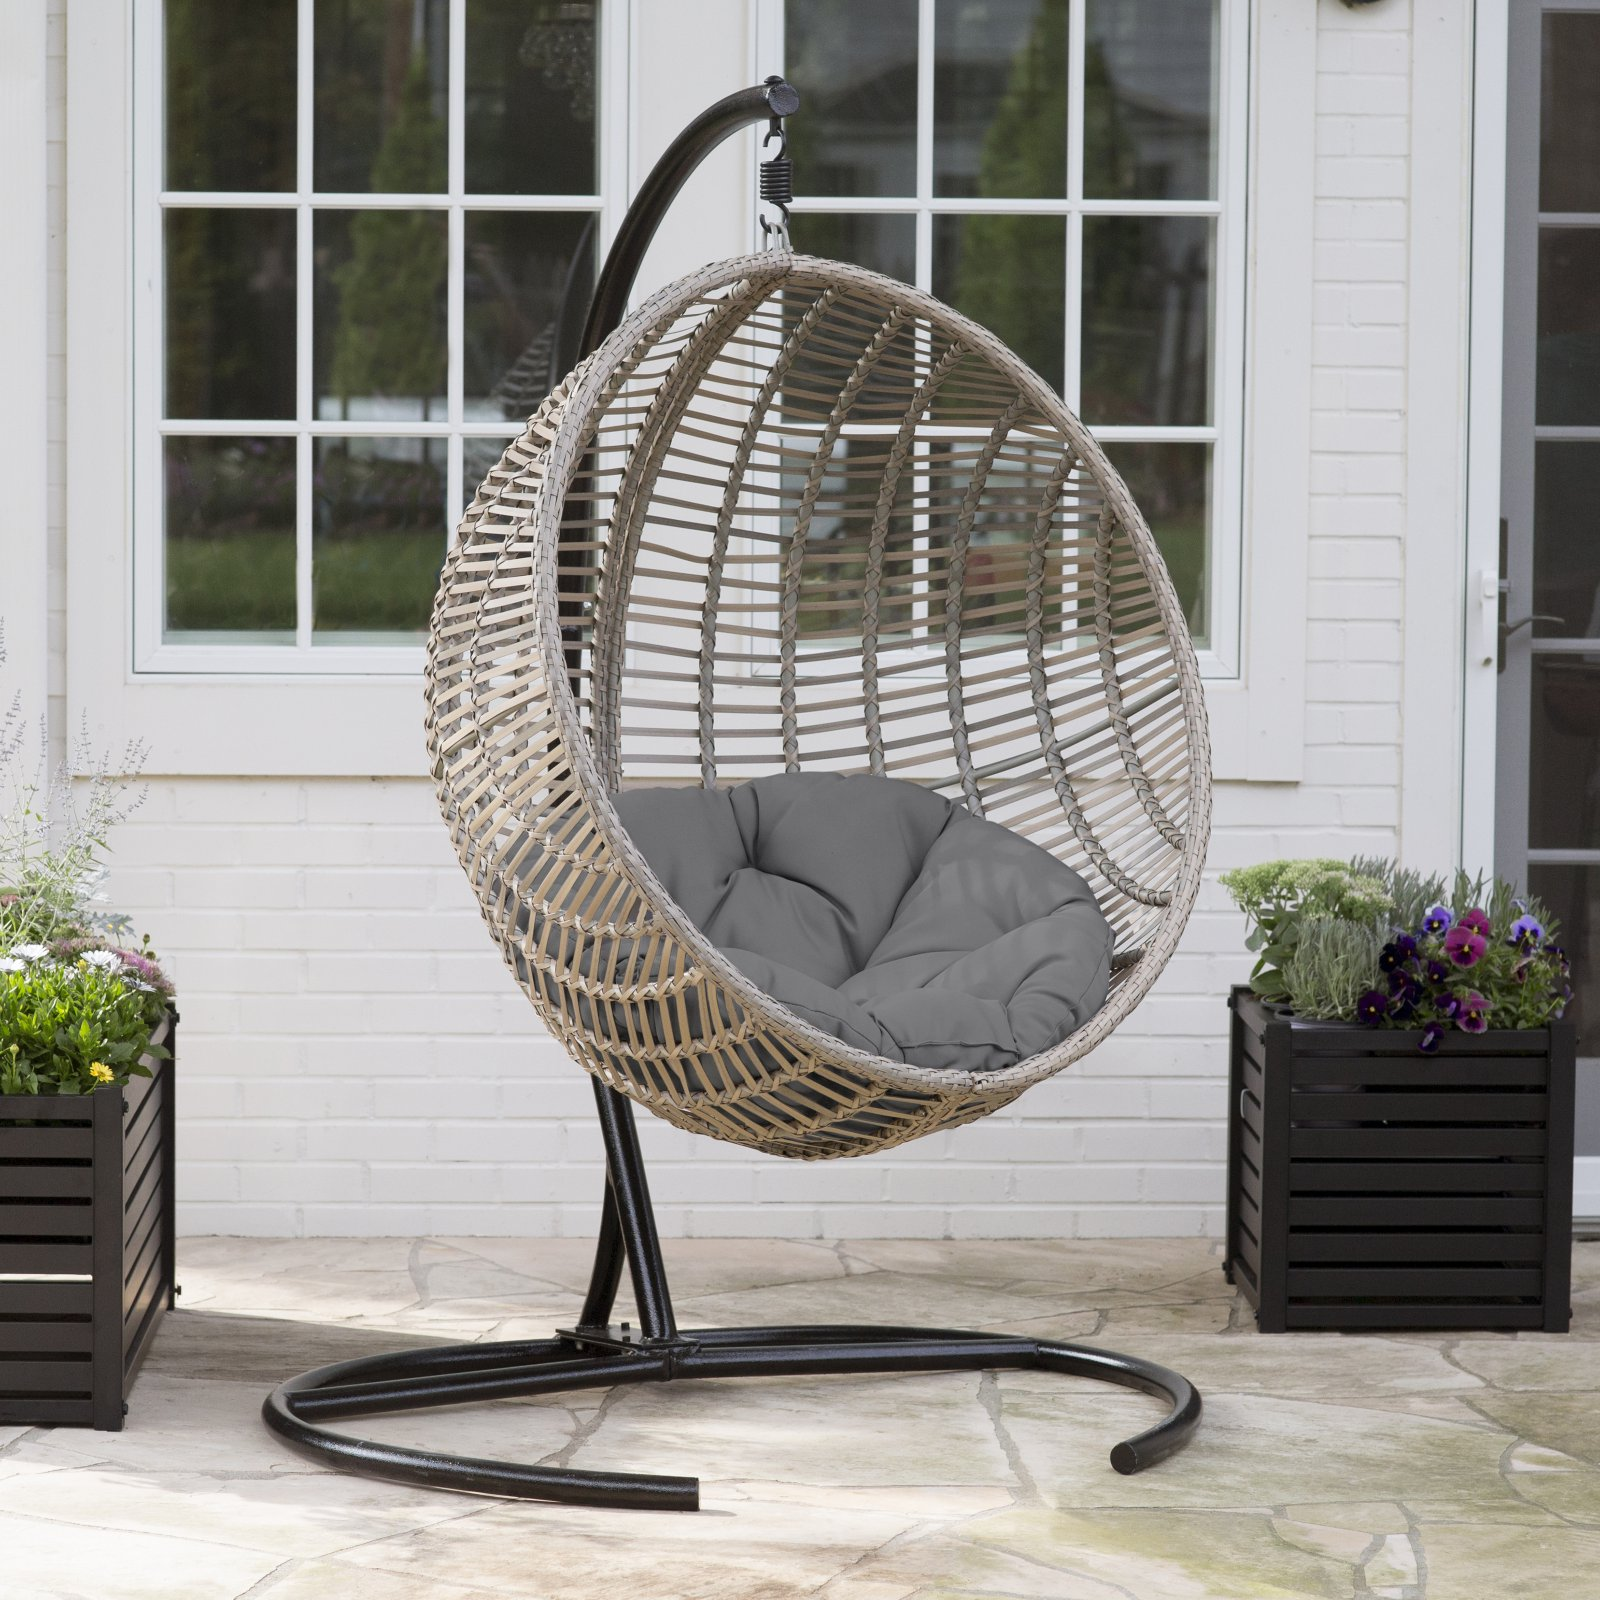 Superieur Product Image Belham Living Resin Wicker Kambree Rib Hanging Egg Chair With  Cushion And Stand